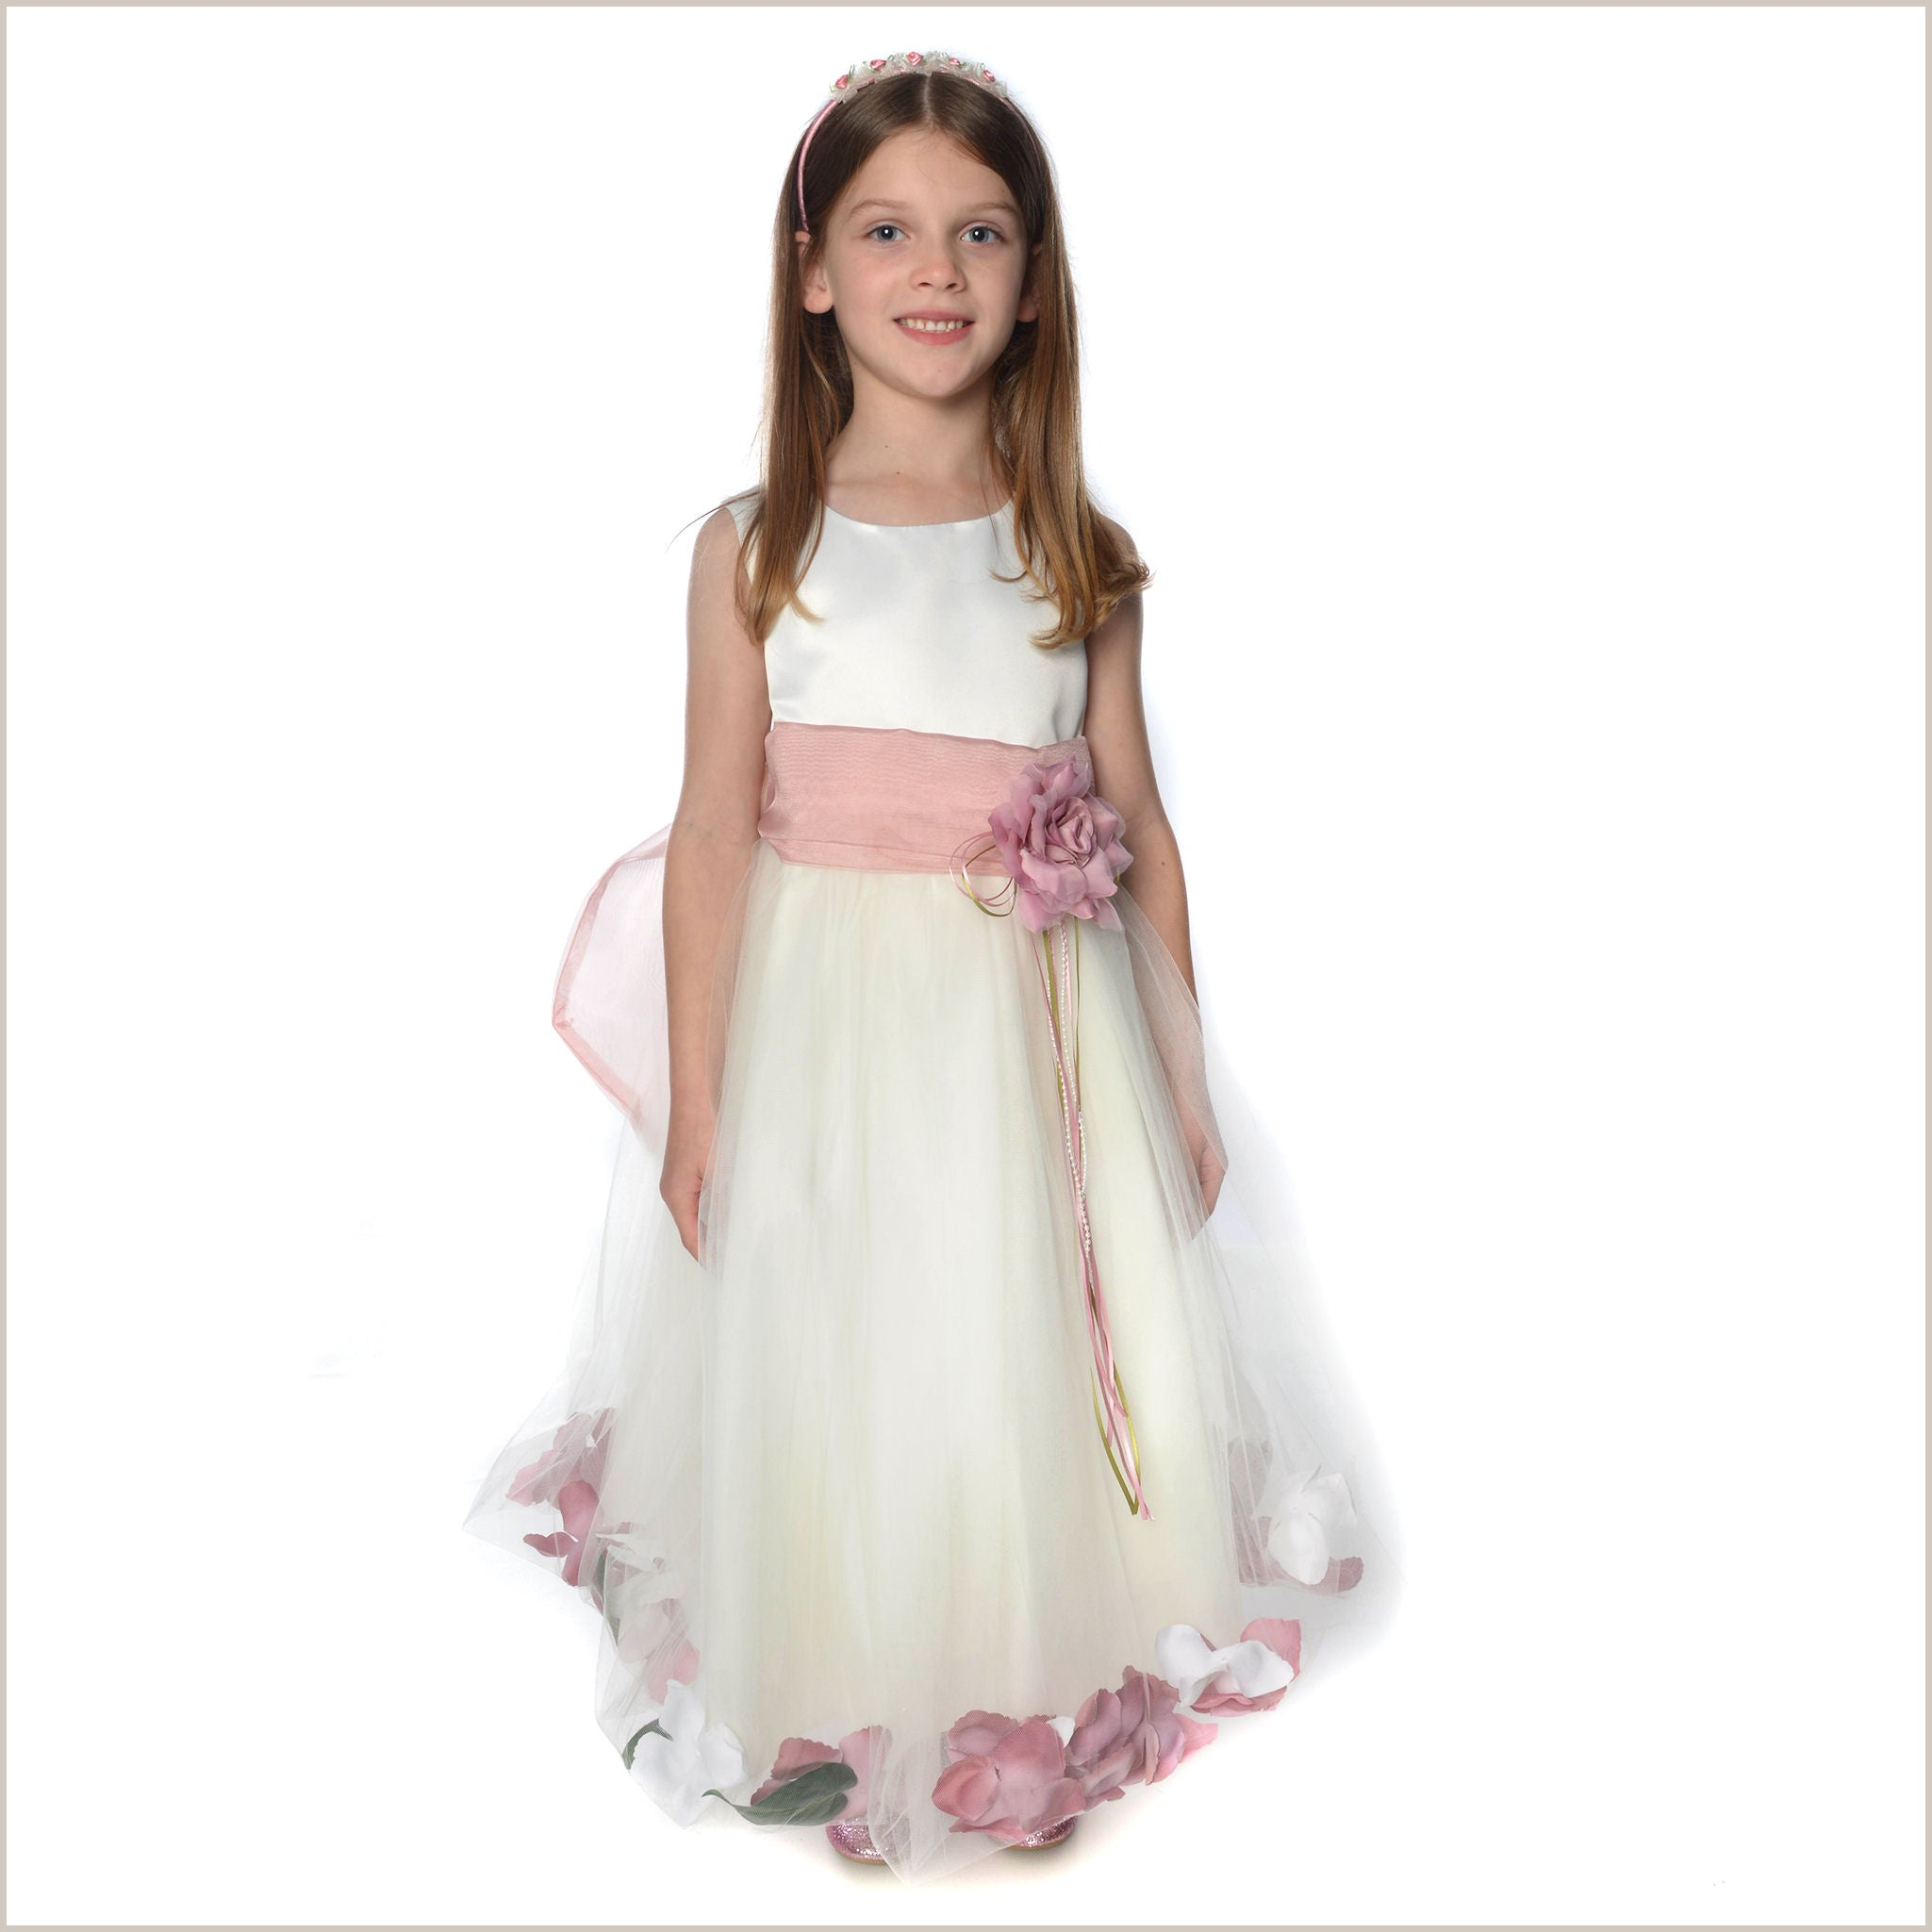 a3296a92b Ivory Petal Dress with Dusty Rose Pink Petals